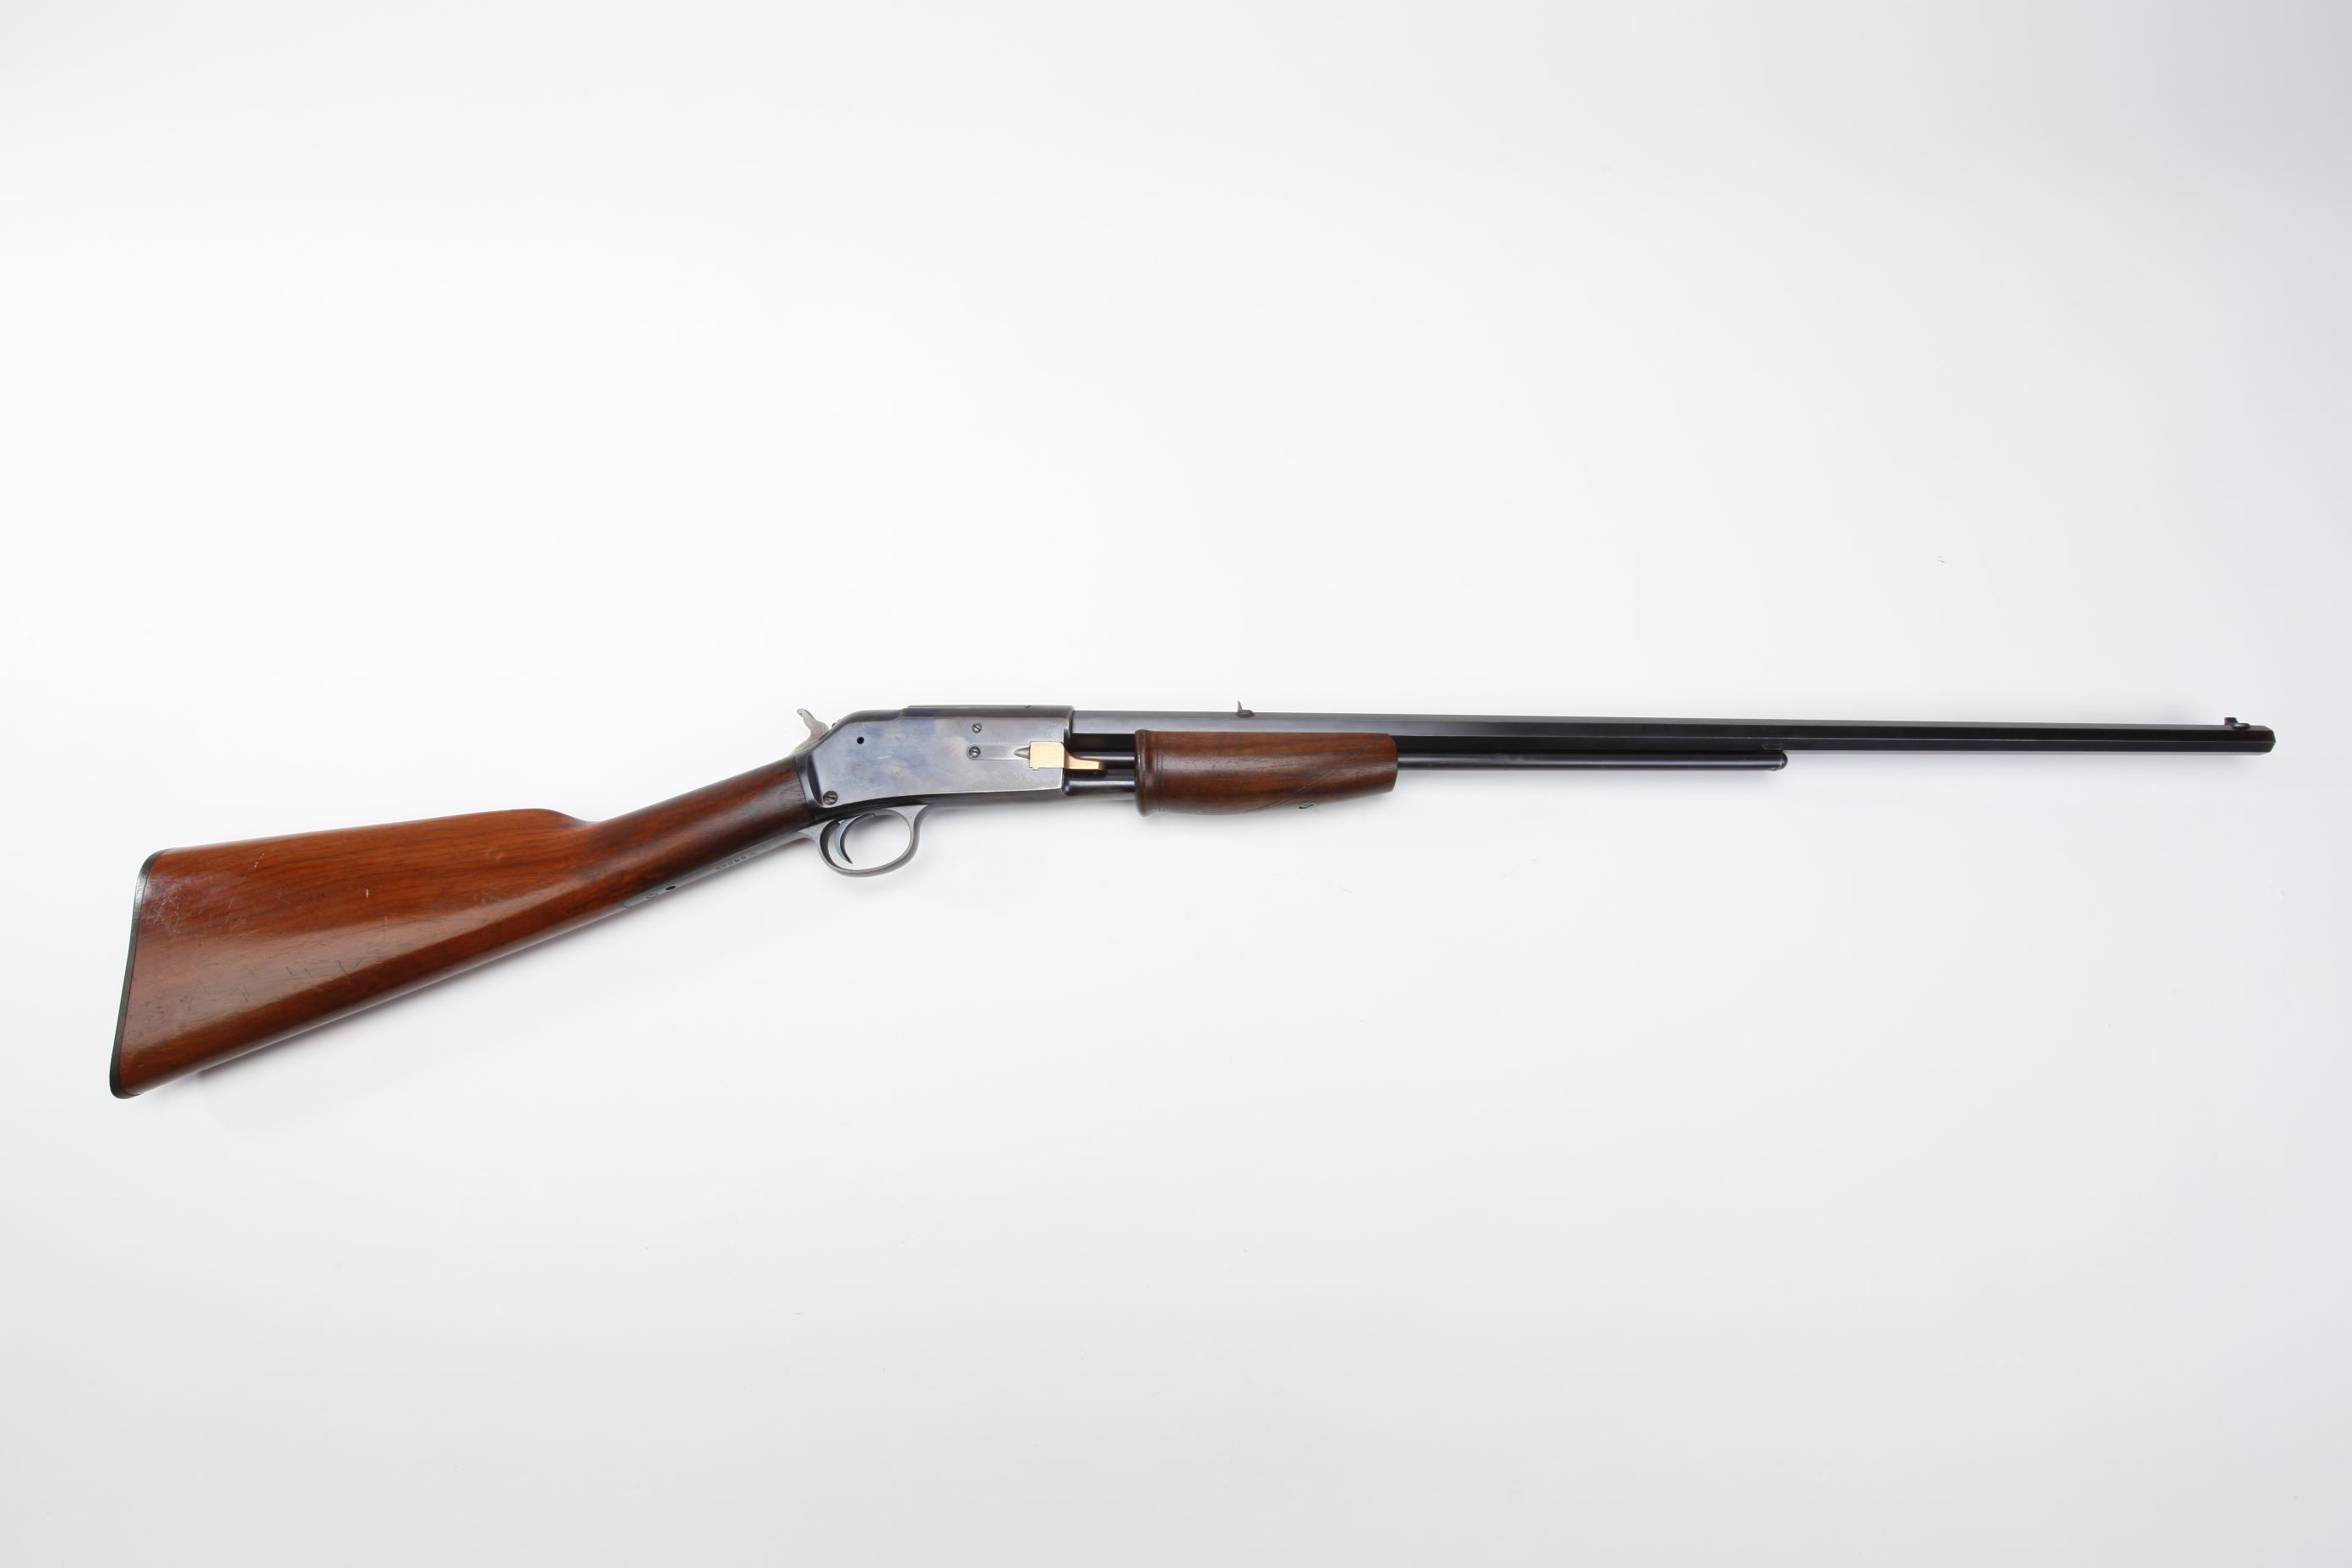 Colt Lightning Slide Action Rifle Small Frame (2)